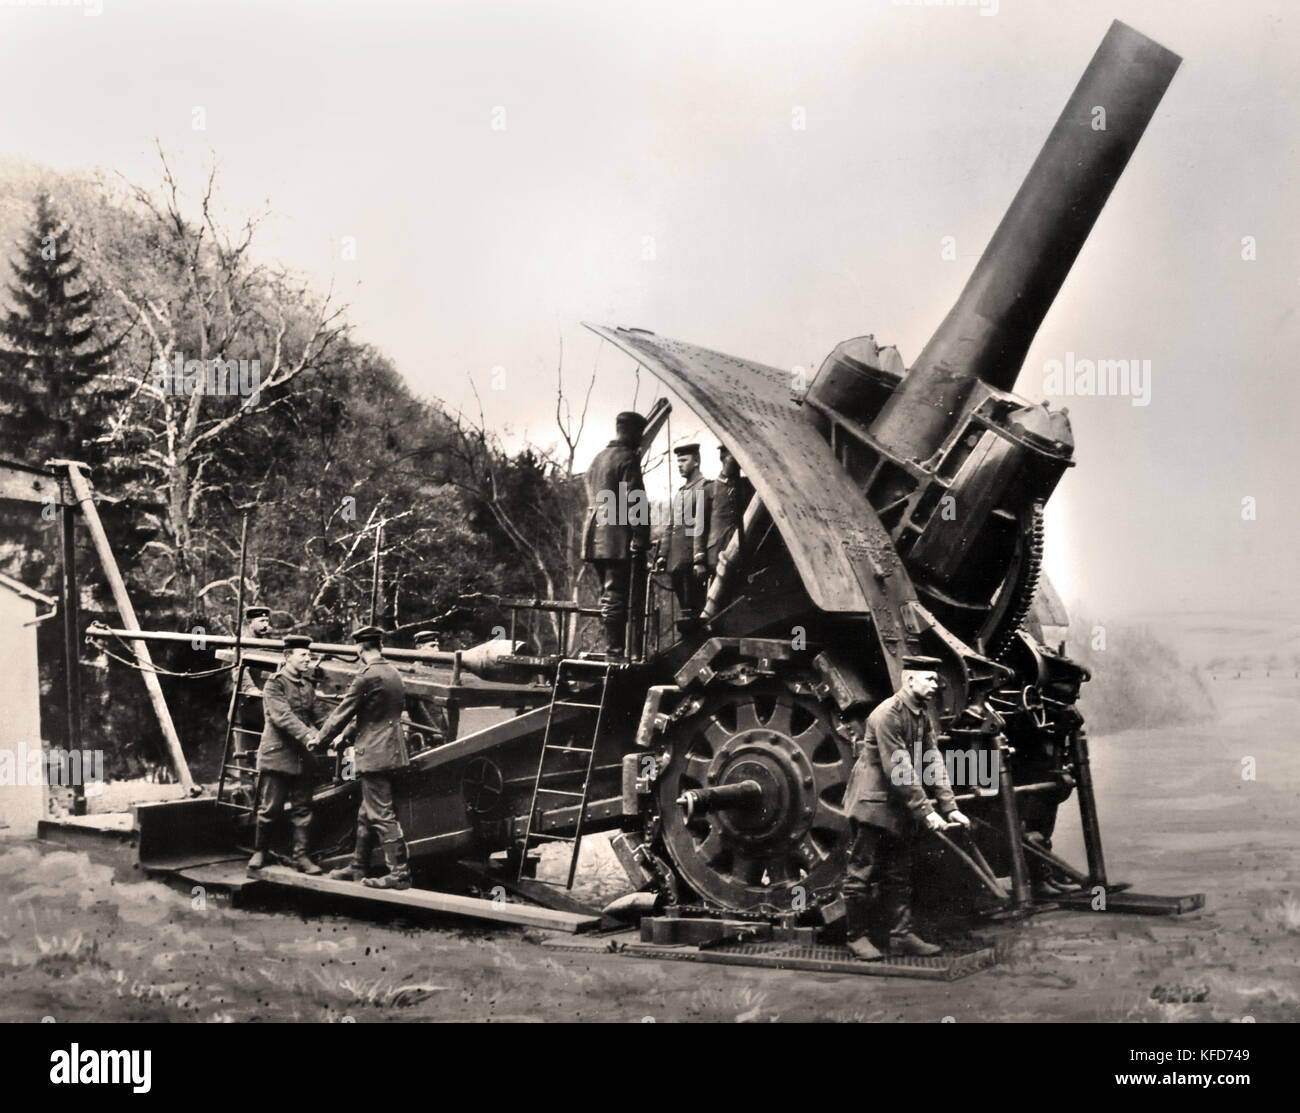 One of the first Big Berthas being readied for firing - World War I - First World War, The Great War, 28 July 1914 - Stock Image